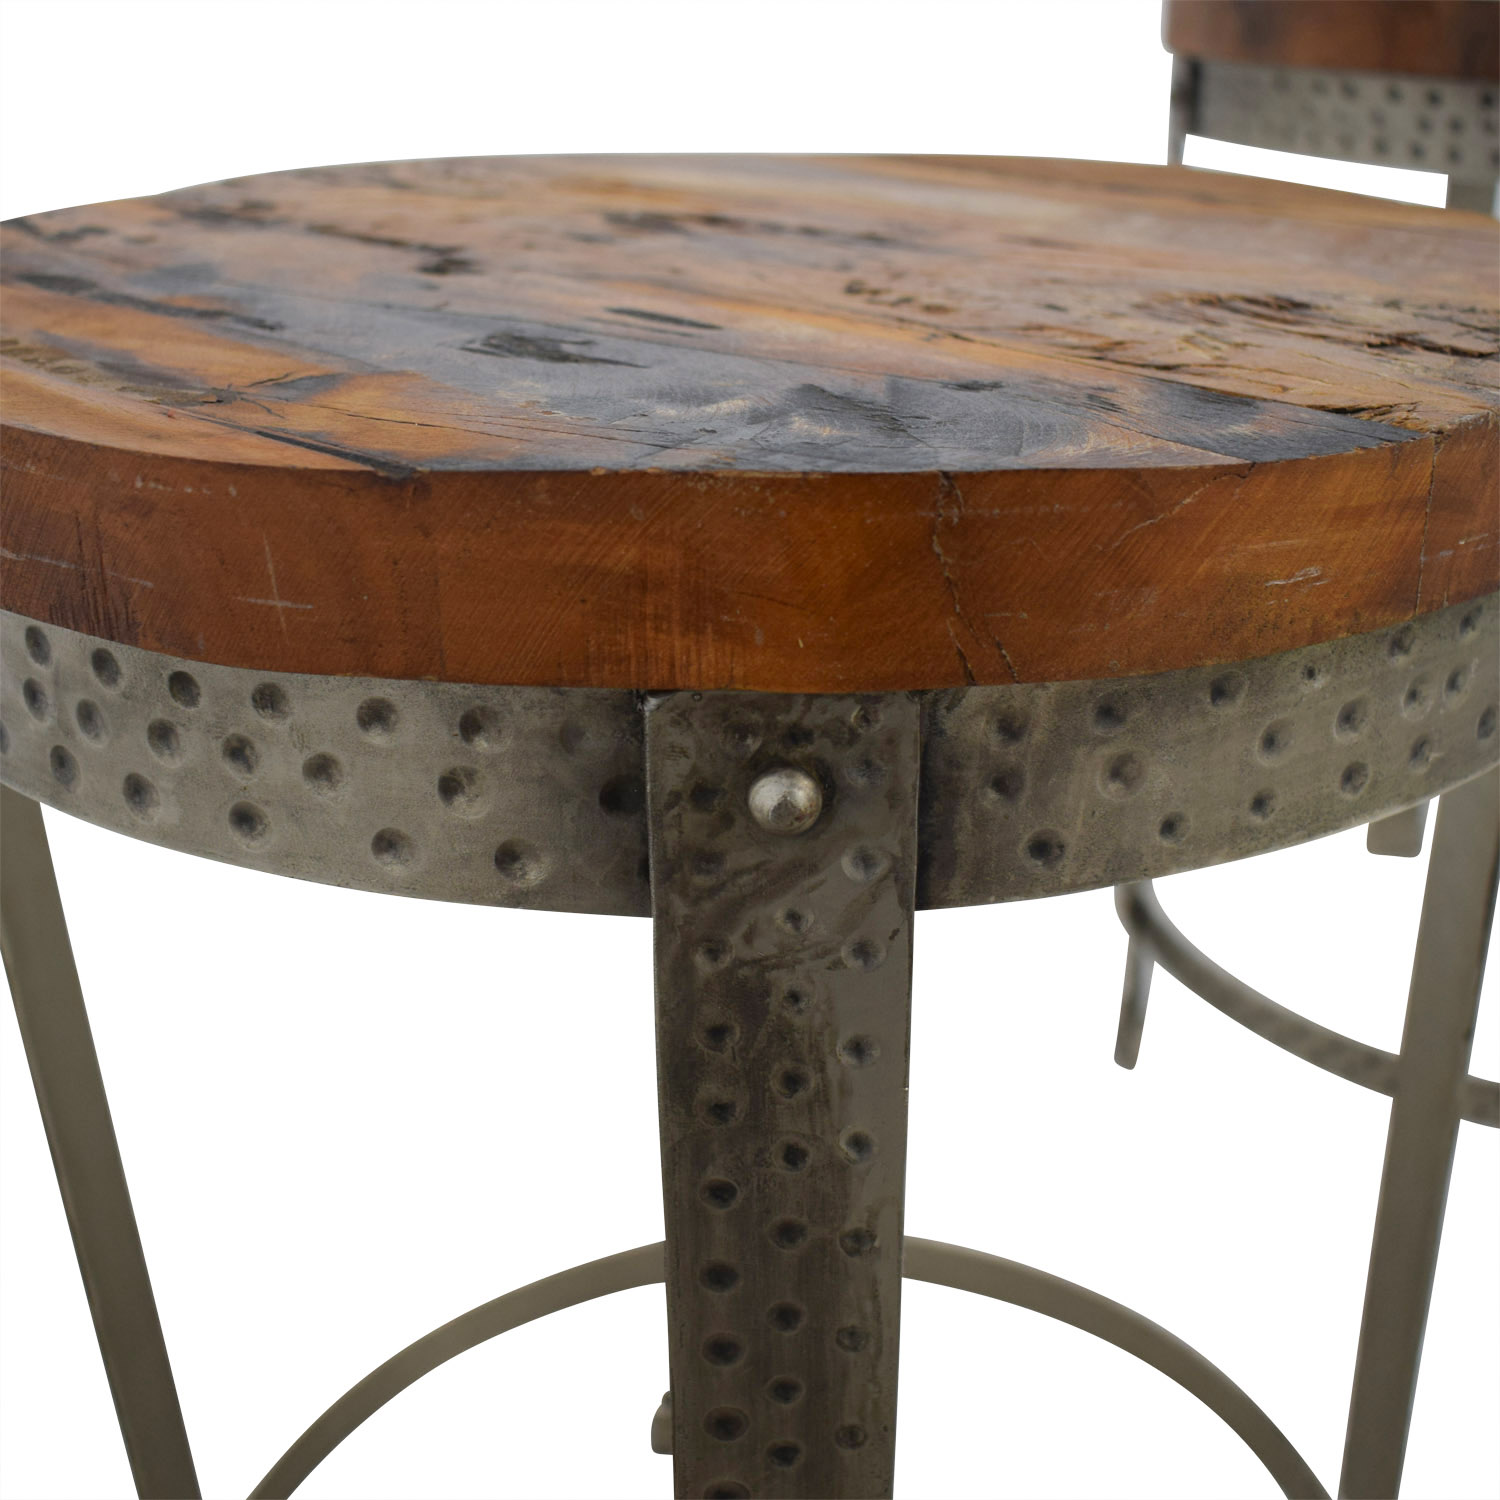 Terrific 60 Off Rustic Wood And Metal Uneven Round Coffee Tables Chairs Machost Co Dining Chair Design Ideas Machostcouk